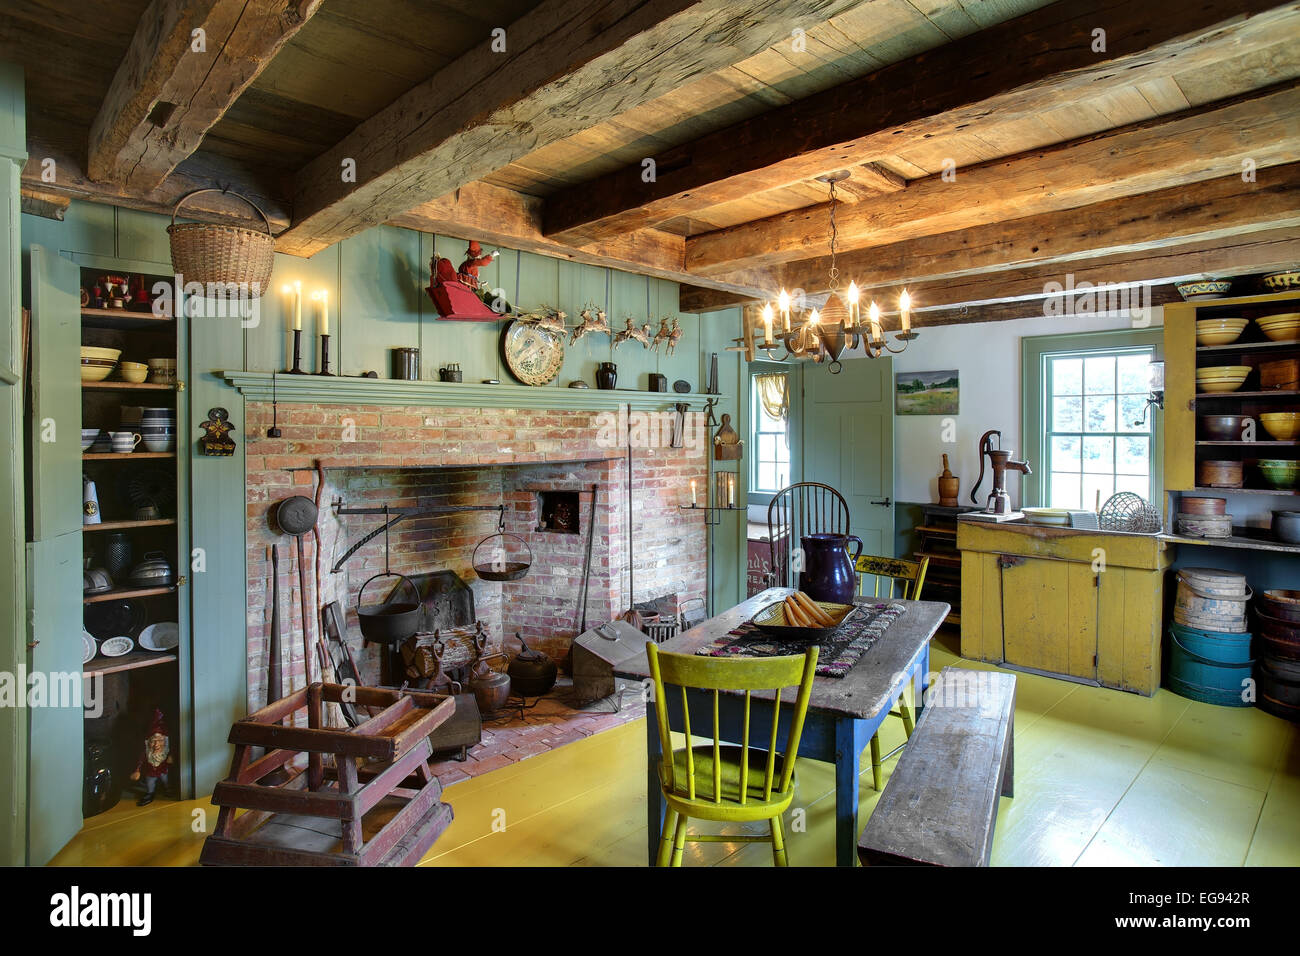 The Kitchen Dining Room And Fireplace In A Restored 17th